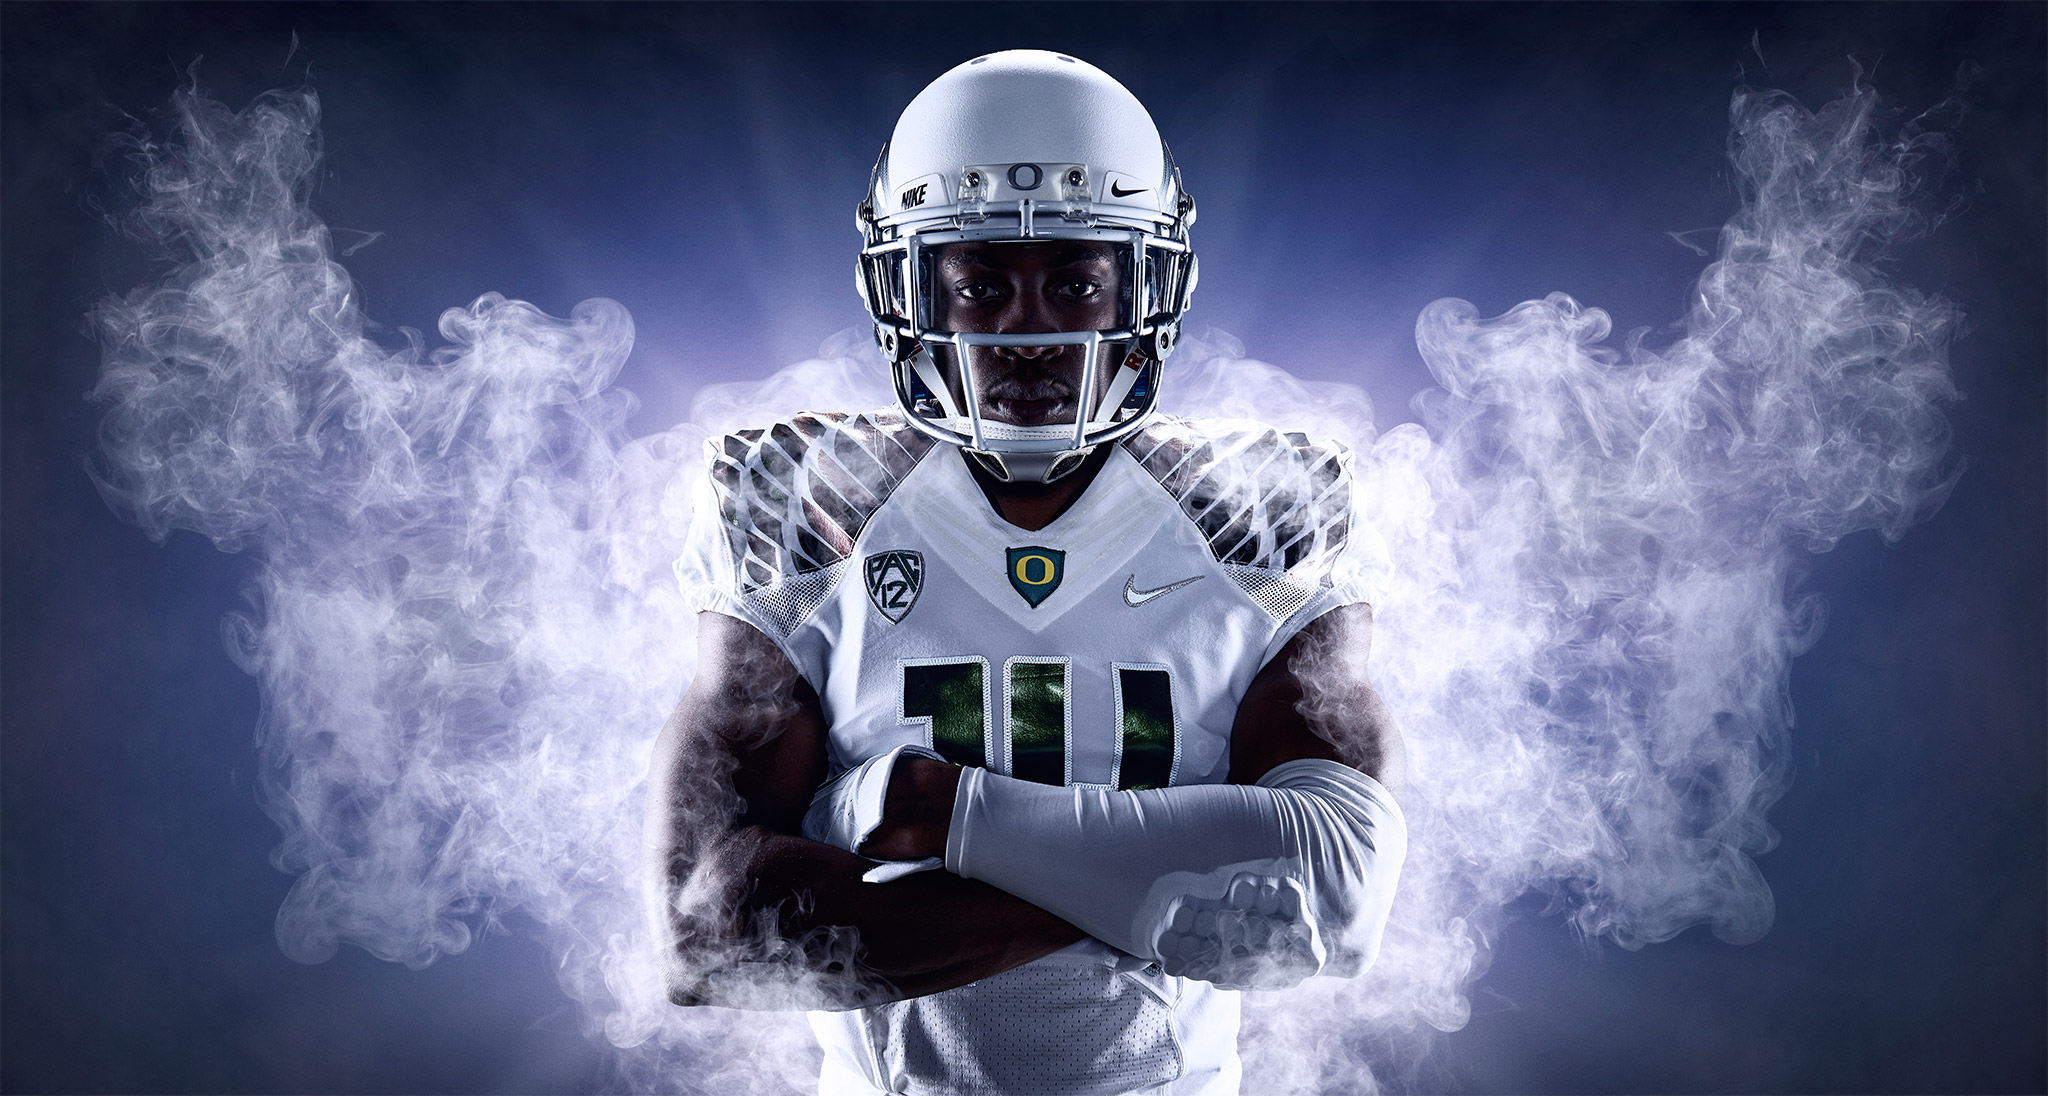 Portrait of Duck Cornerback Ifo Ekpre-Olomu | Zach Ancell Photography